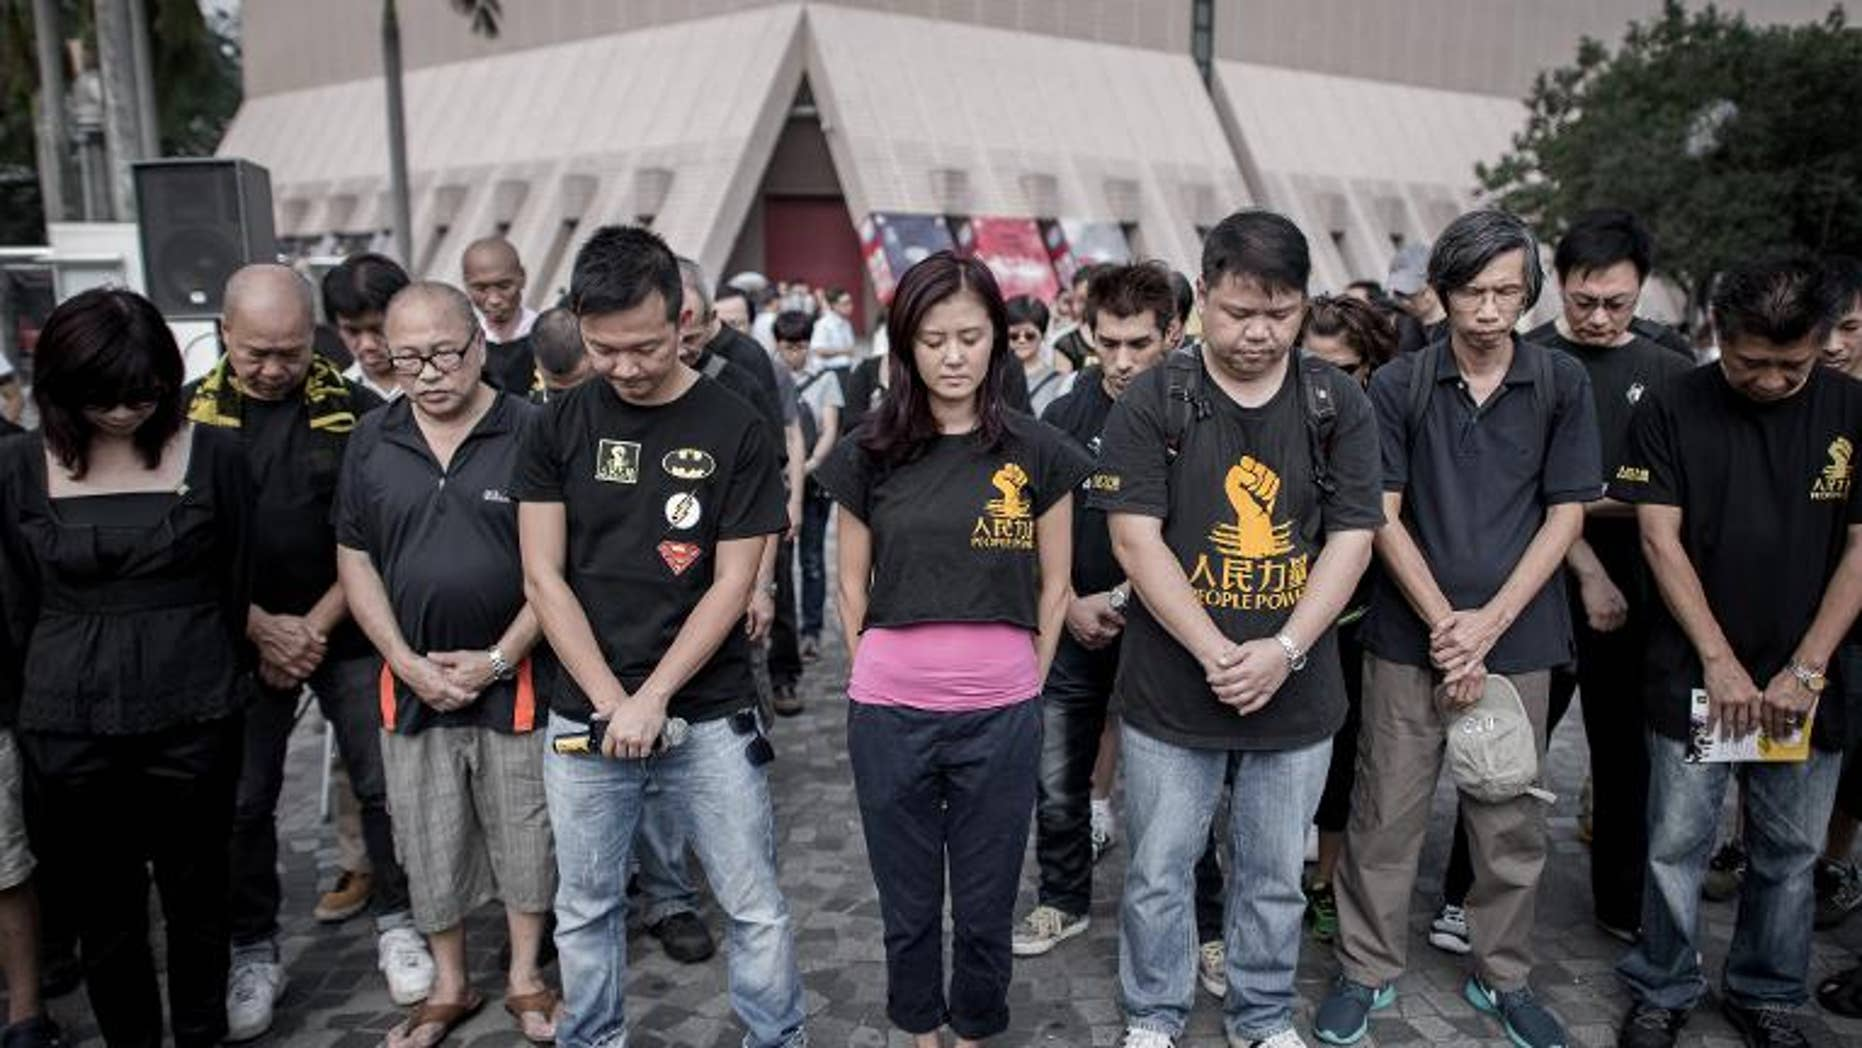 Around a dozen people wearing black clothes hold a minute's silence to mark the first anniversary of a fatal sea disaster which claimed 39 lives in Hong Kong on October 1, 2013